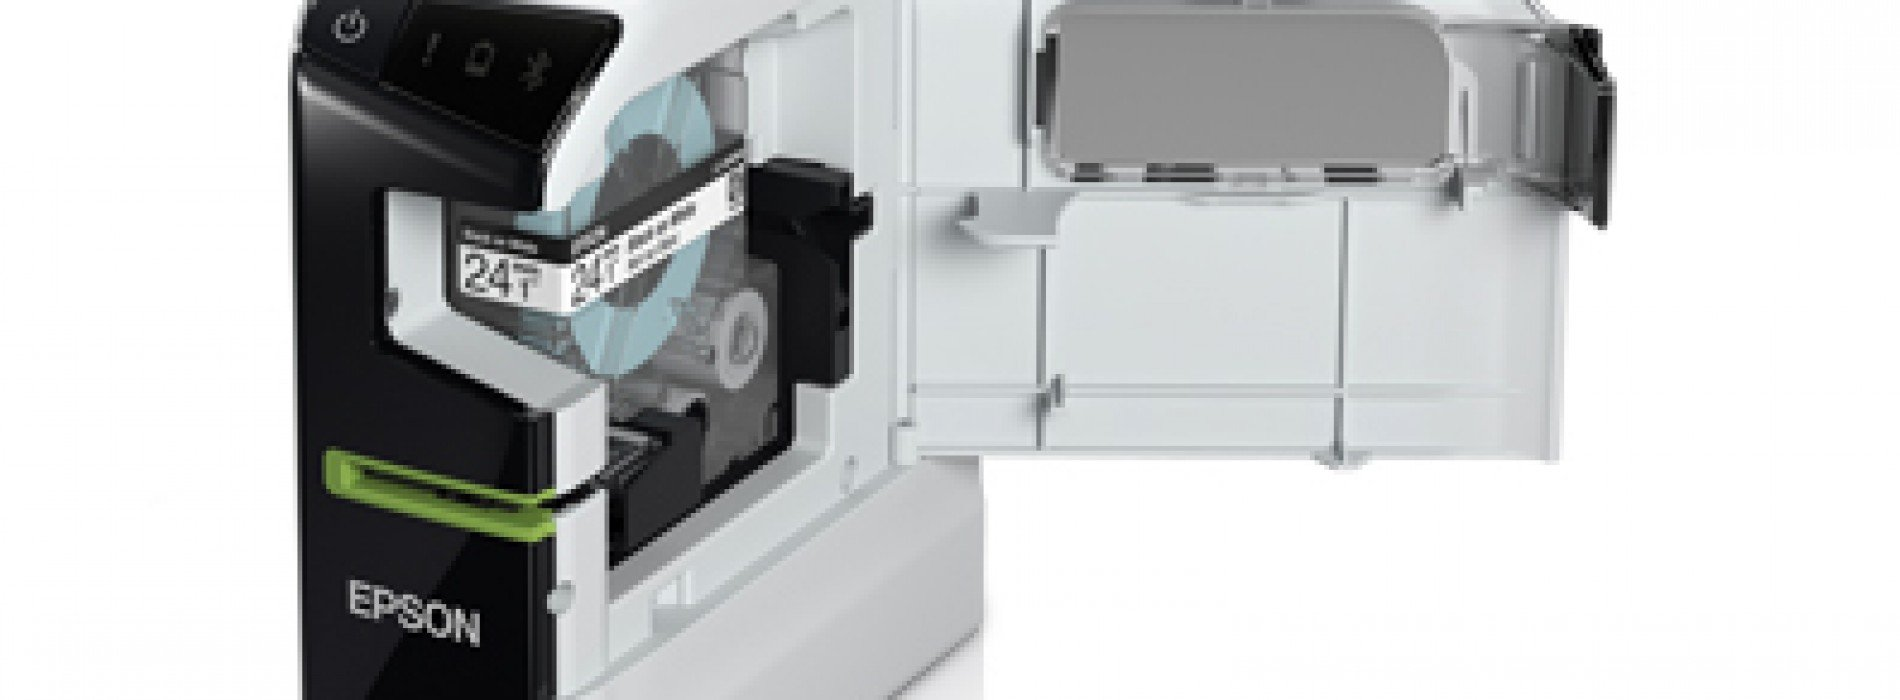 Easily print labels with the Epson LW-600P Label Printer